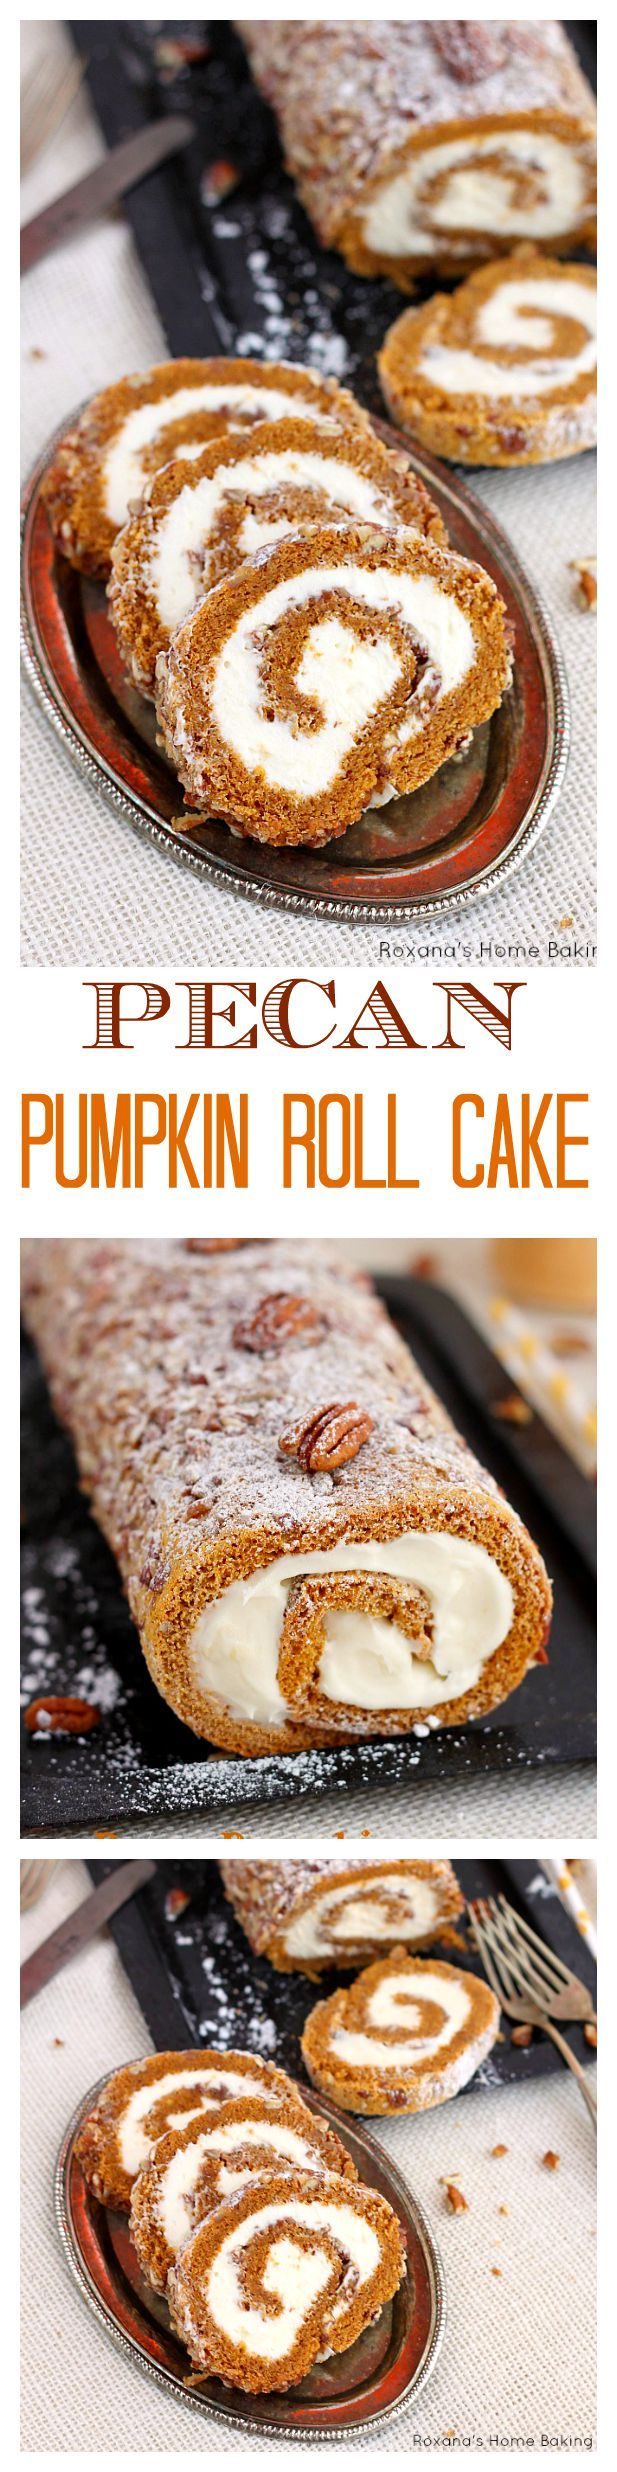 A classic fall dessert, pecan pumpkin roll cake with smooth cream cheese filling is a must at our Thanksgiving table. One bite and you'll understand why!